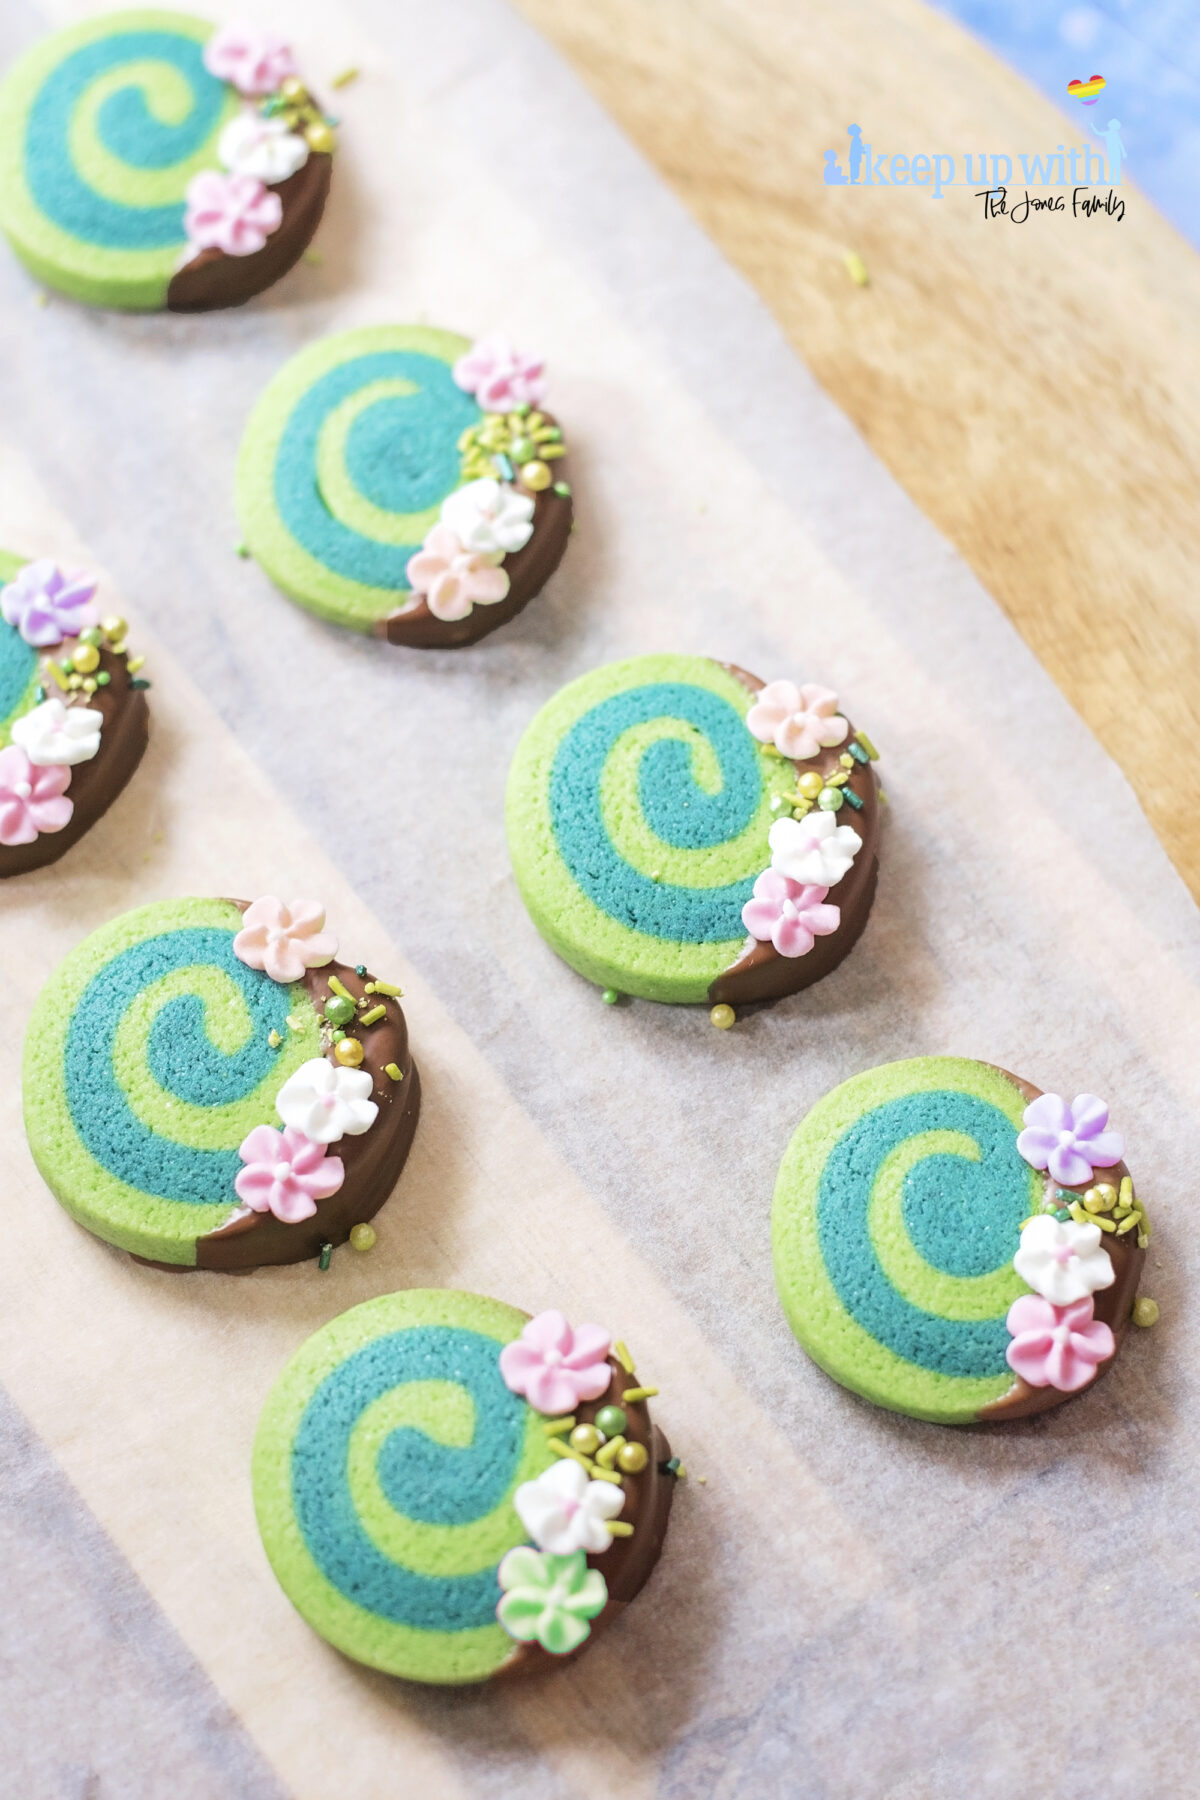 Image shows Disney's Moana Heart of Te Fiti Biscuits, a swirl of bright and dark green, dipped slightly in milk chocolate and embellished with sugar blossom flowers and green sprinkles.  They are set on a light wood chopping board with baking paper underneath. . Image by keep up with the jones family.